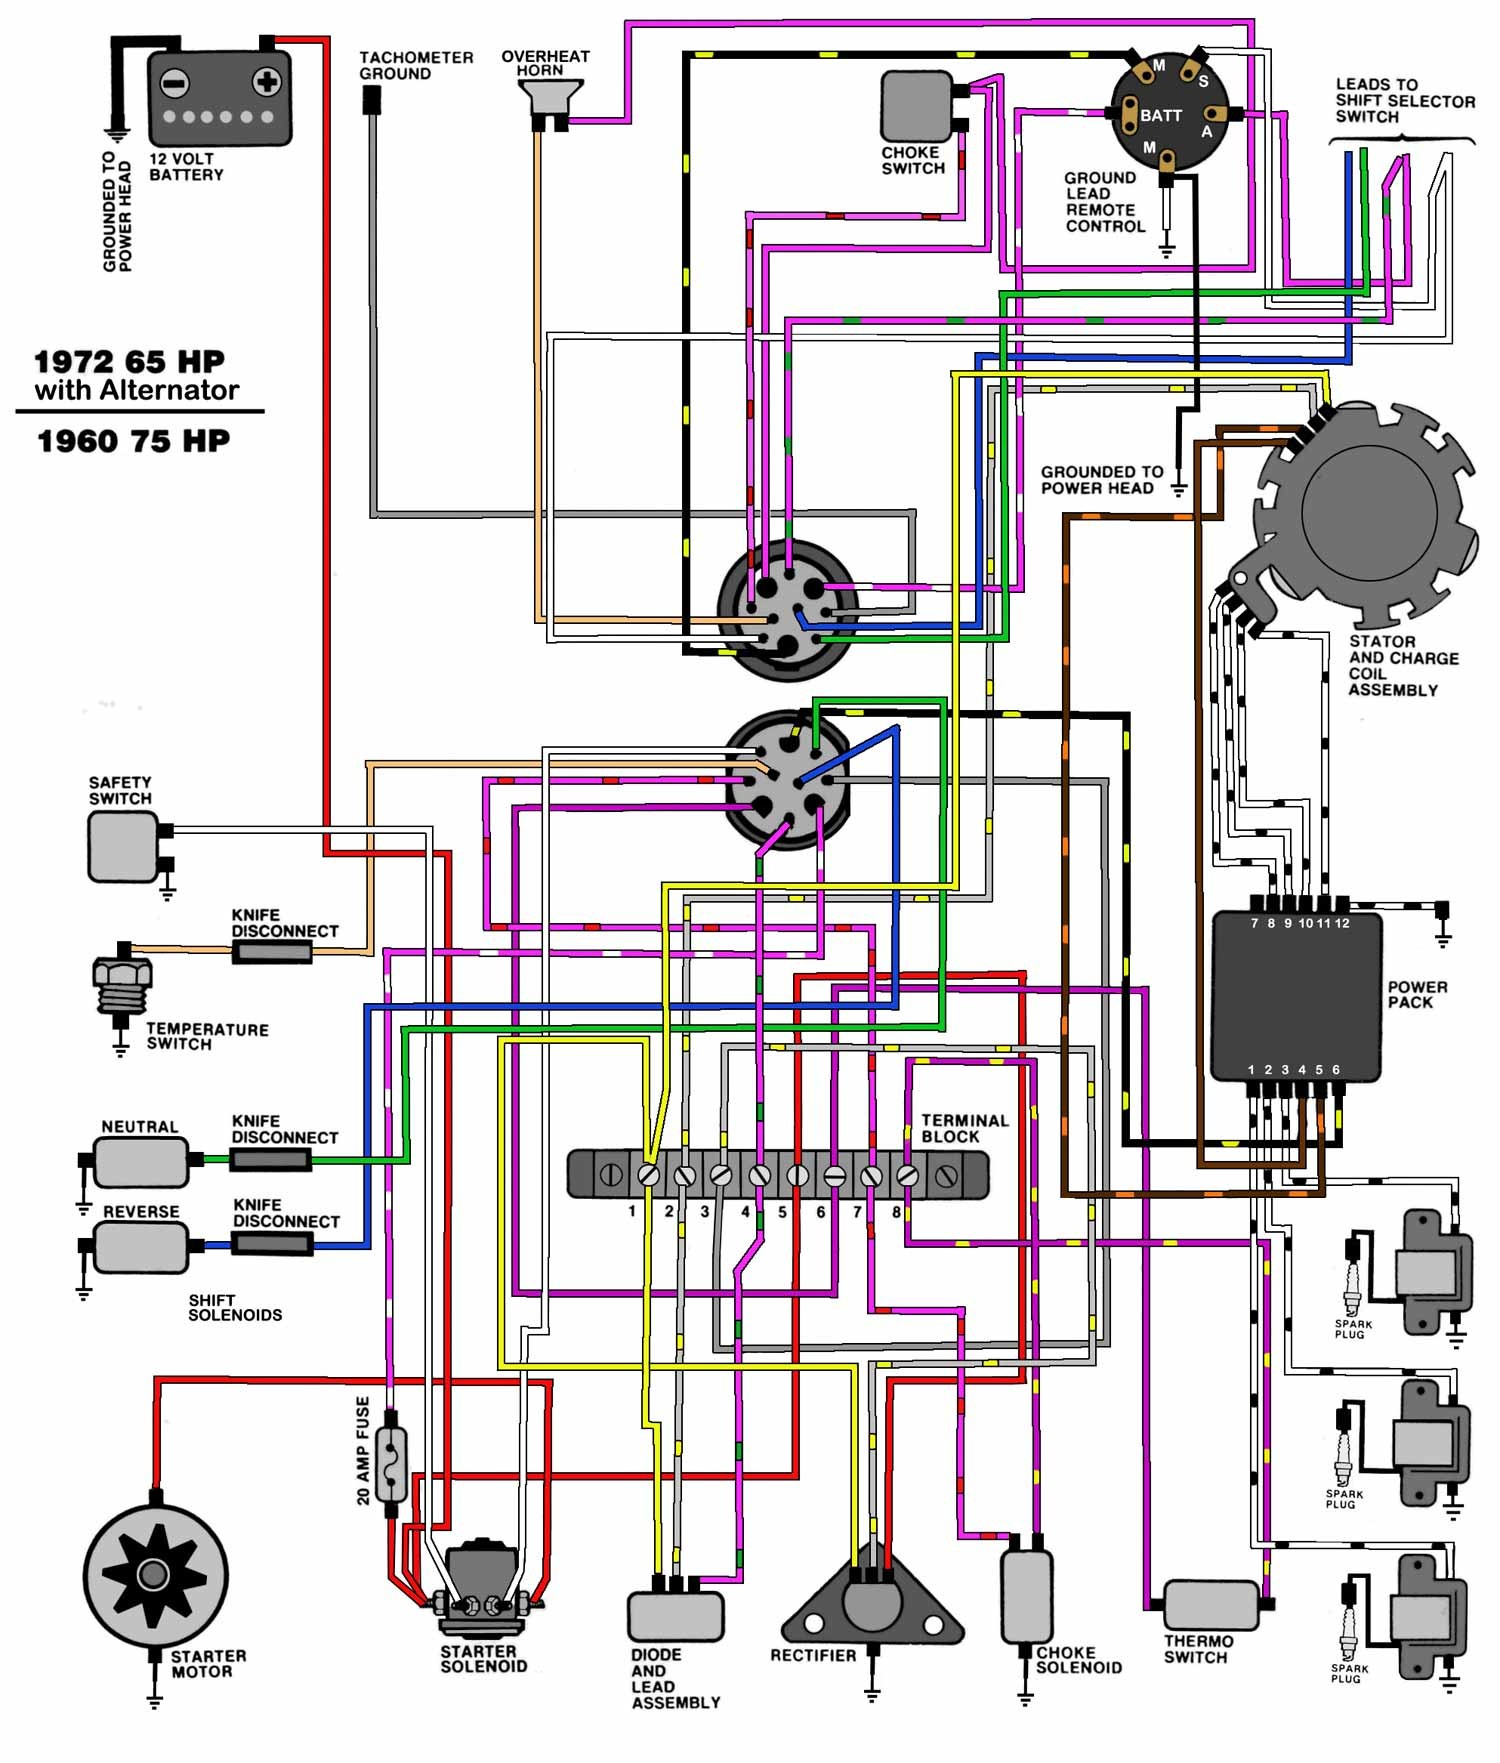 hight resolution of 40 hp honda wiring diagram wiring library 40 hp johnson outboard wiring diagram hecho